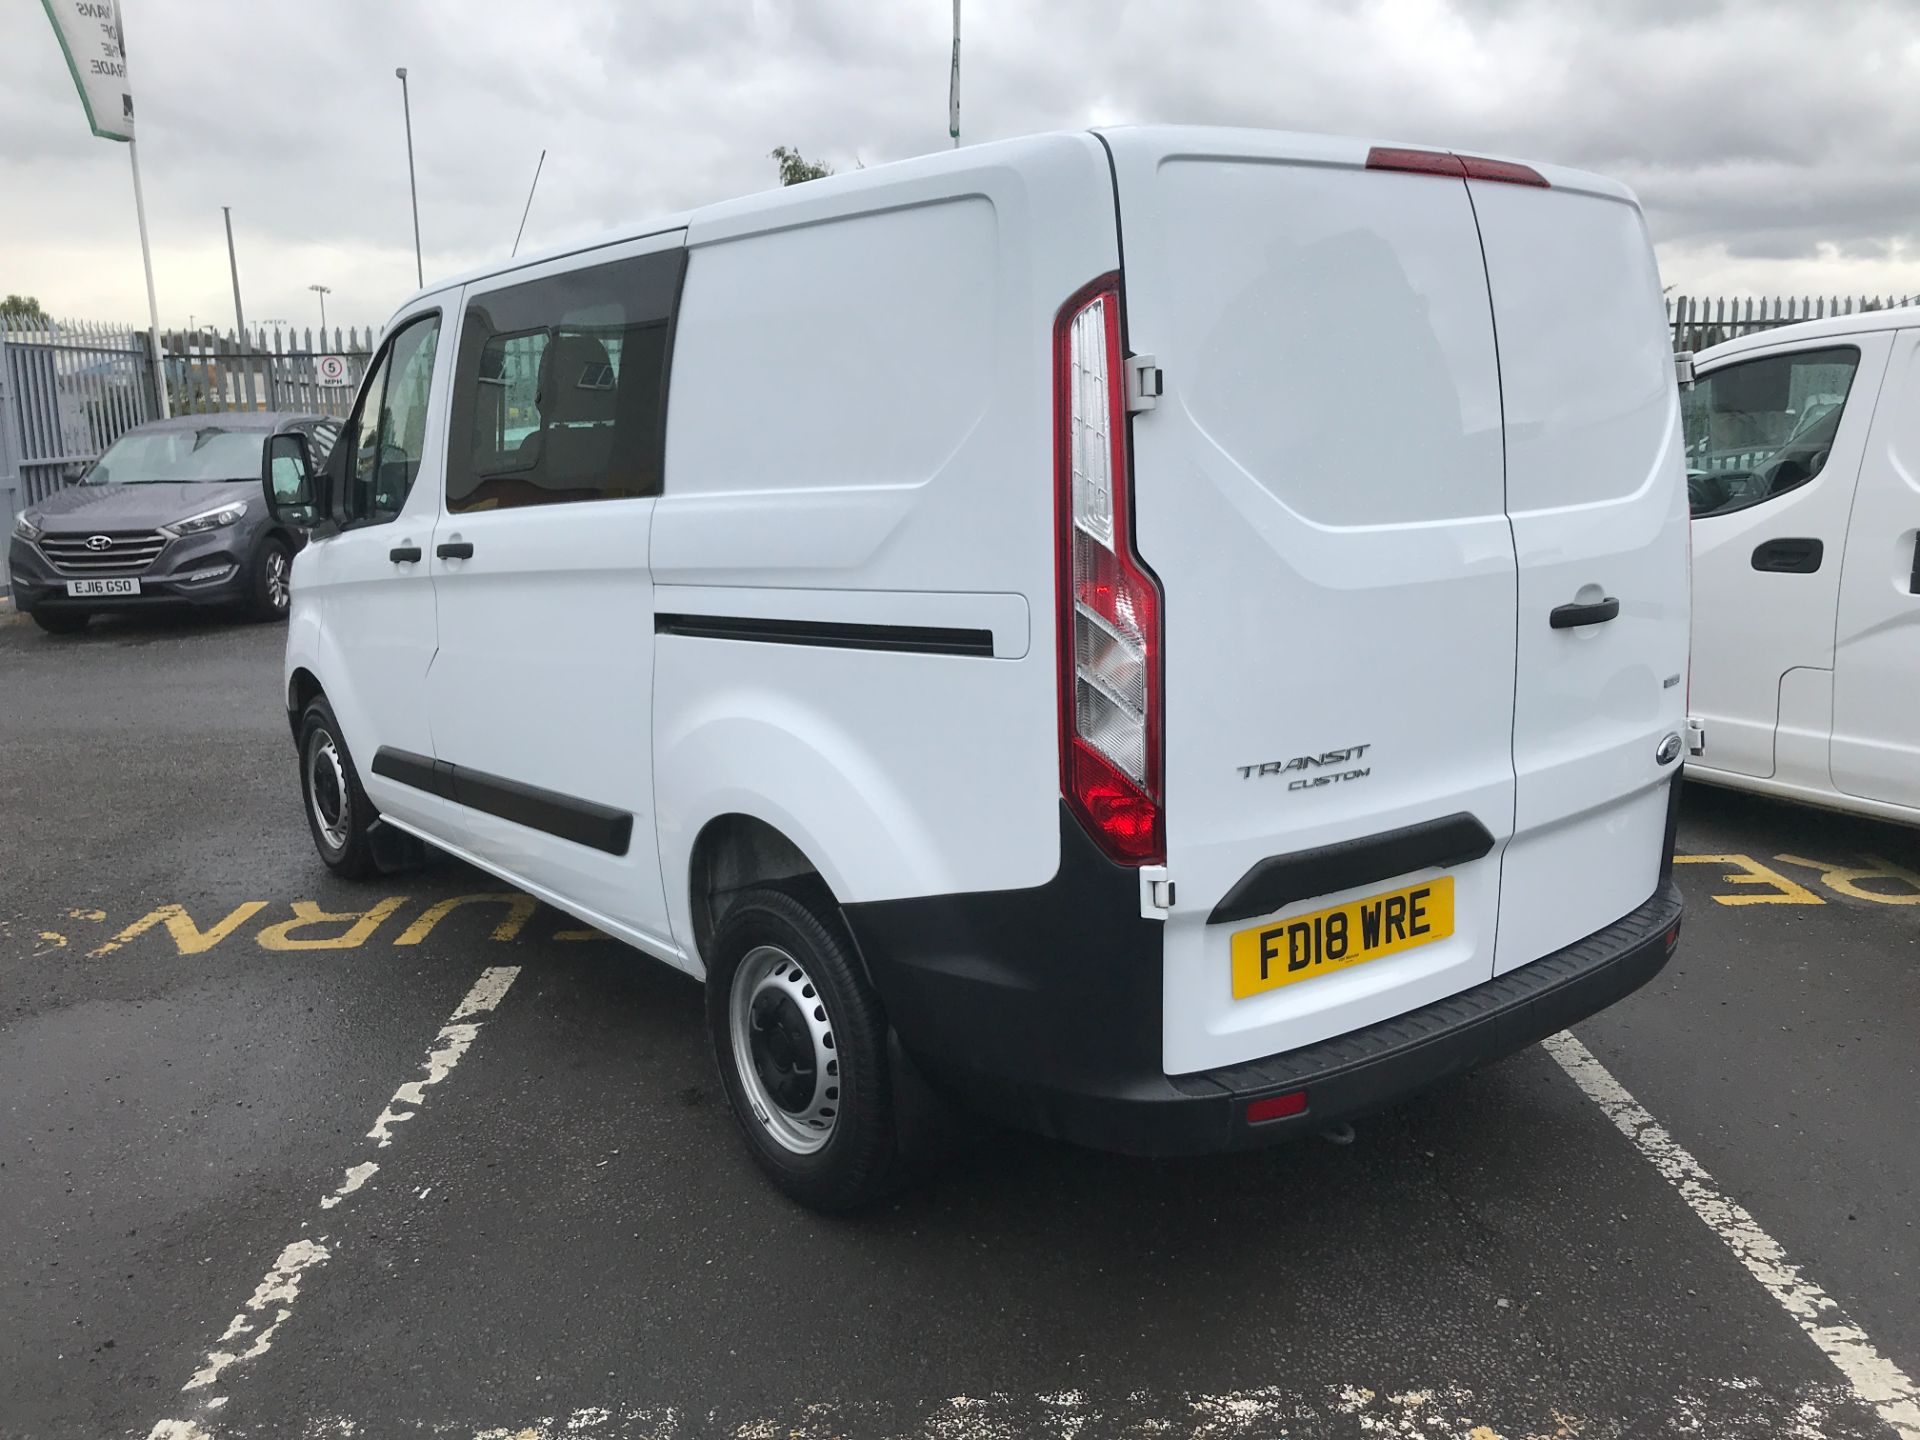 2018 Ford Transit Custom 300 L1 2.0TDCI 105PS LOW ROOF EURO 6 DOUBLE CAB (FD18WRE) Image 8